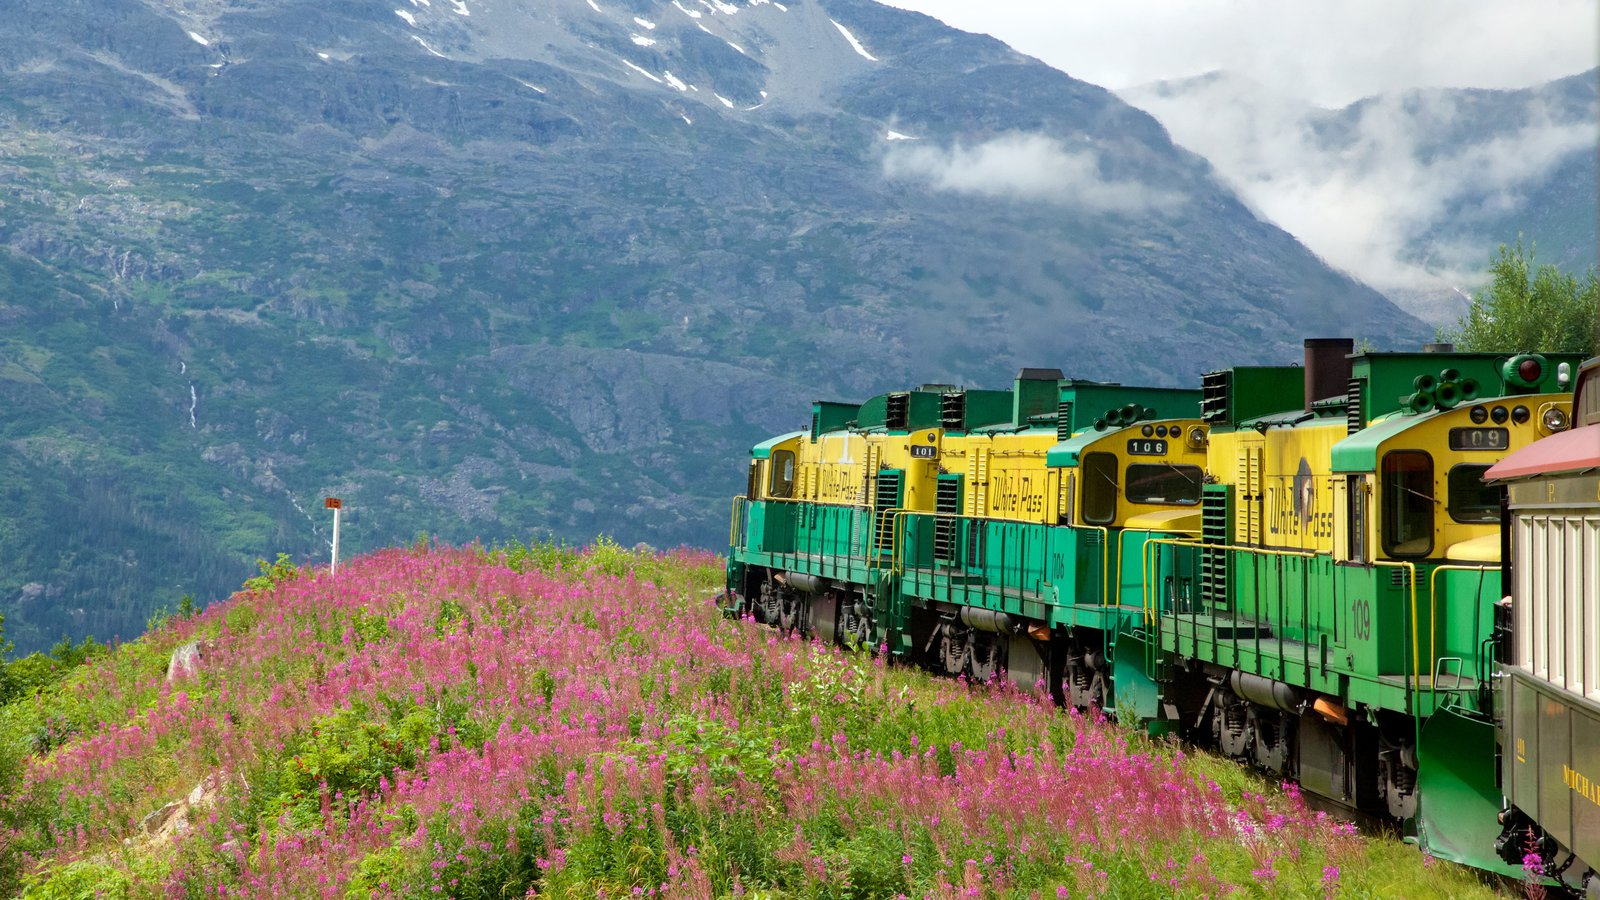 White Pass featuring mountains, railway items and wild flowers